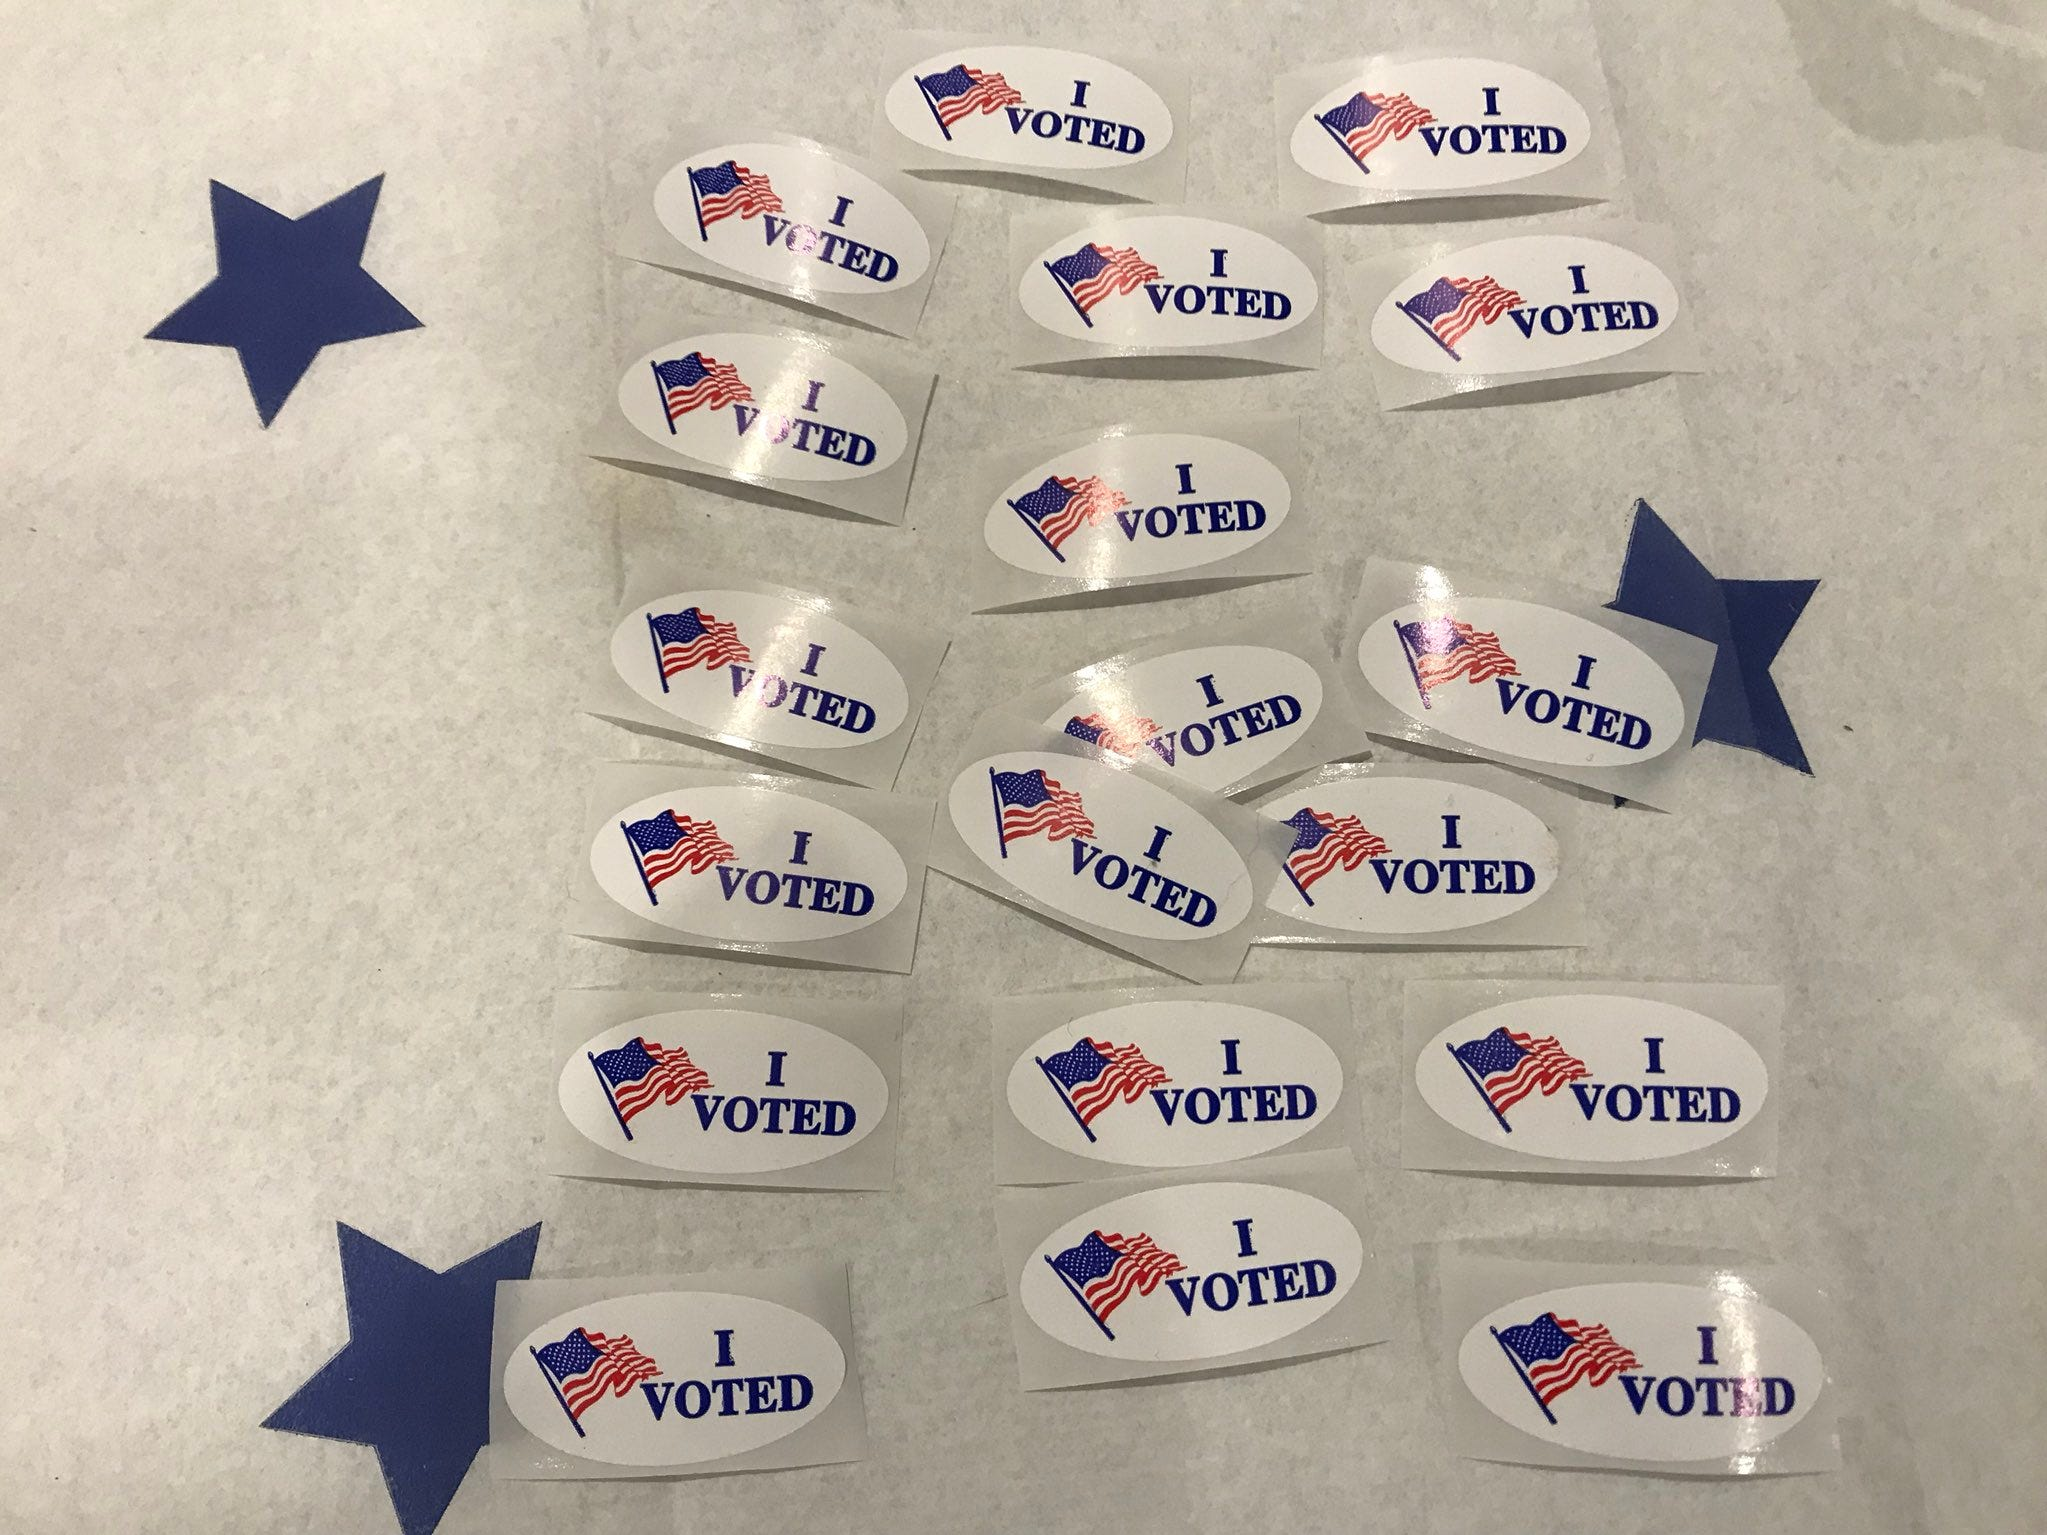 """I voted"" stickers await Shasta County voters after casting ballots on Tuesday, Nov. 6, 2018."